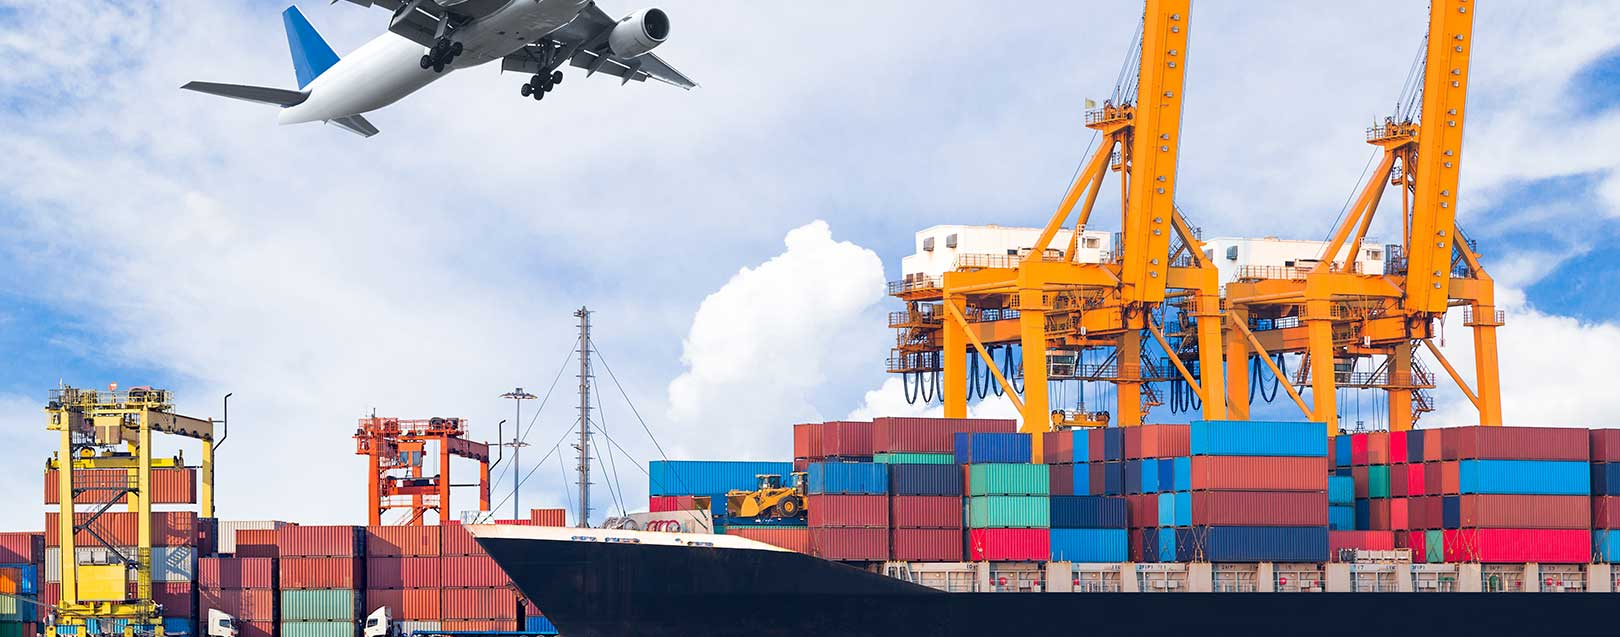 India's exports up by 9%, imports by 26%, trade gap widens to $16.3 bn in Jan